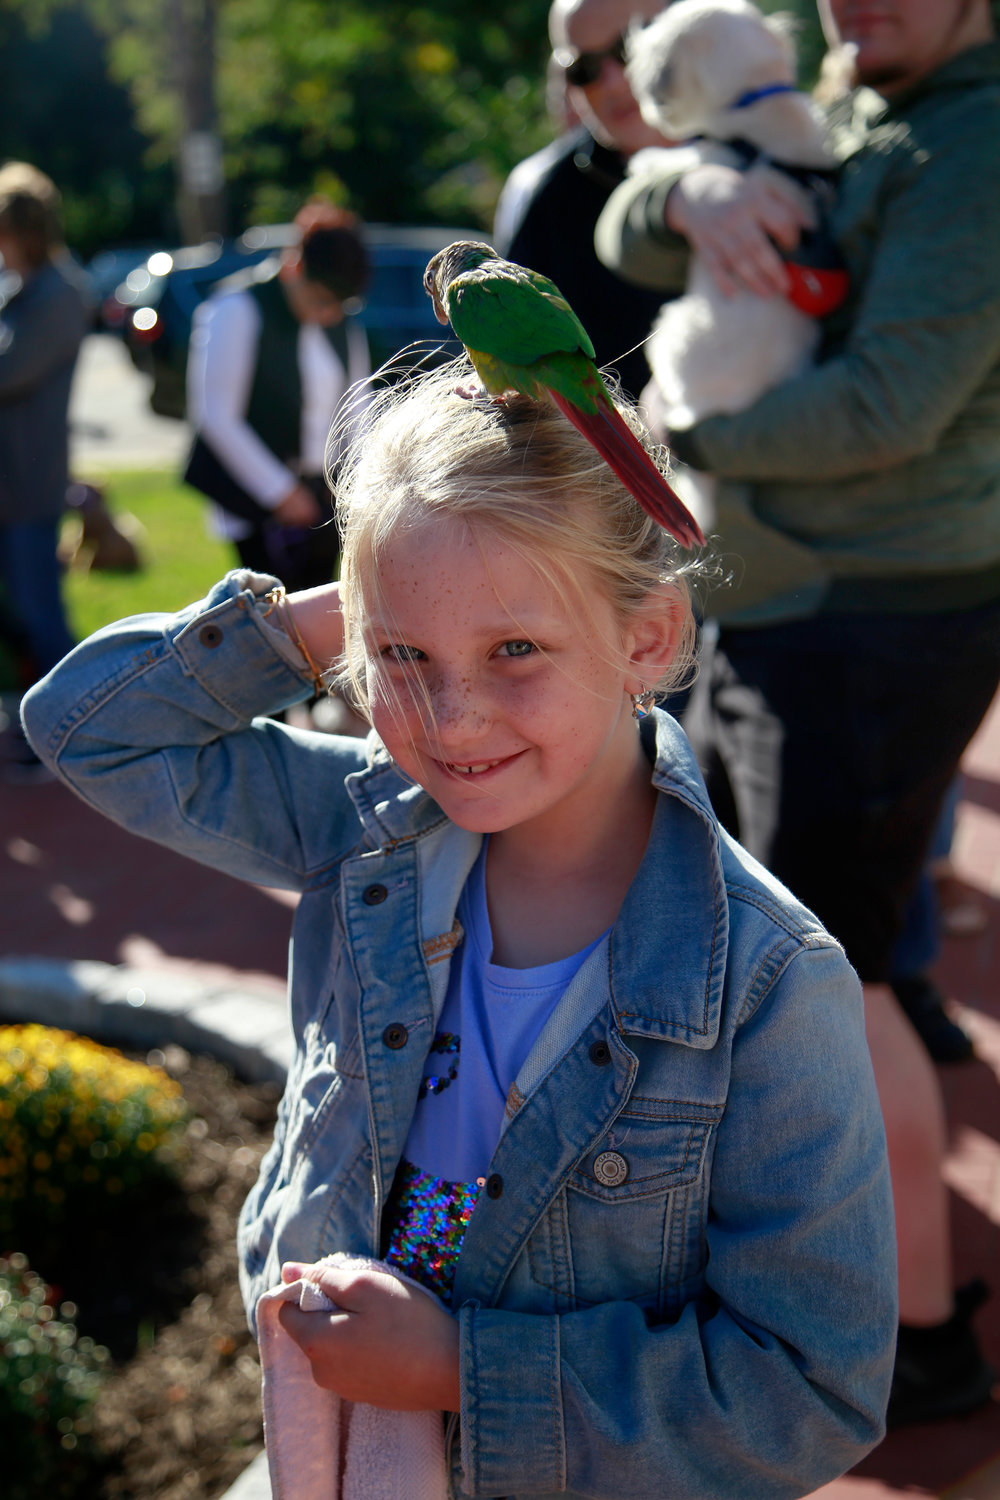 Charlotte Fitzgerald brought her conure parrot, Skittles, to the ceremony.